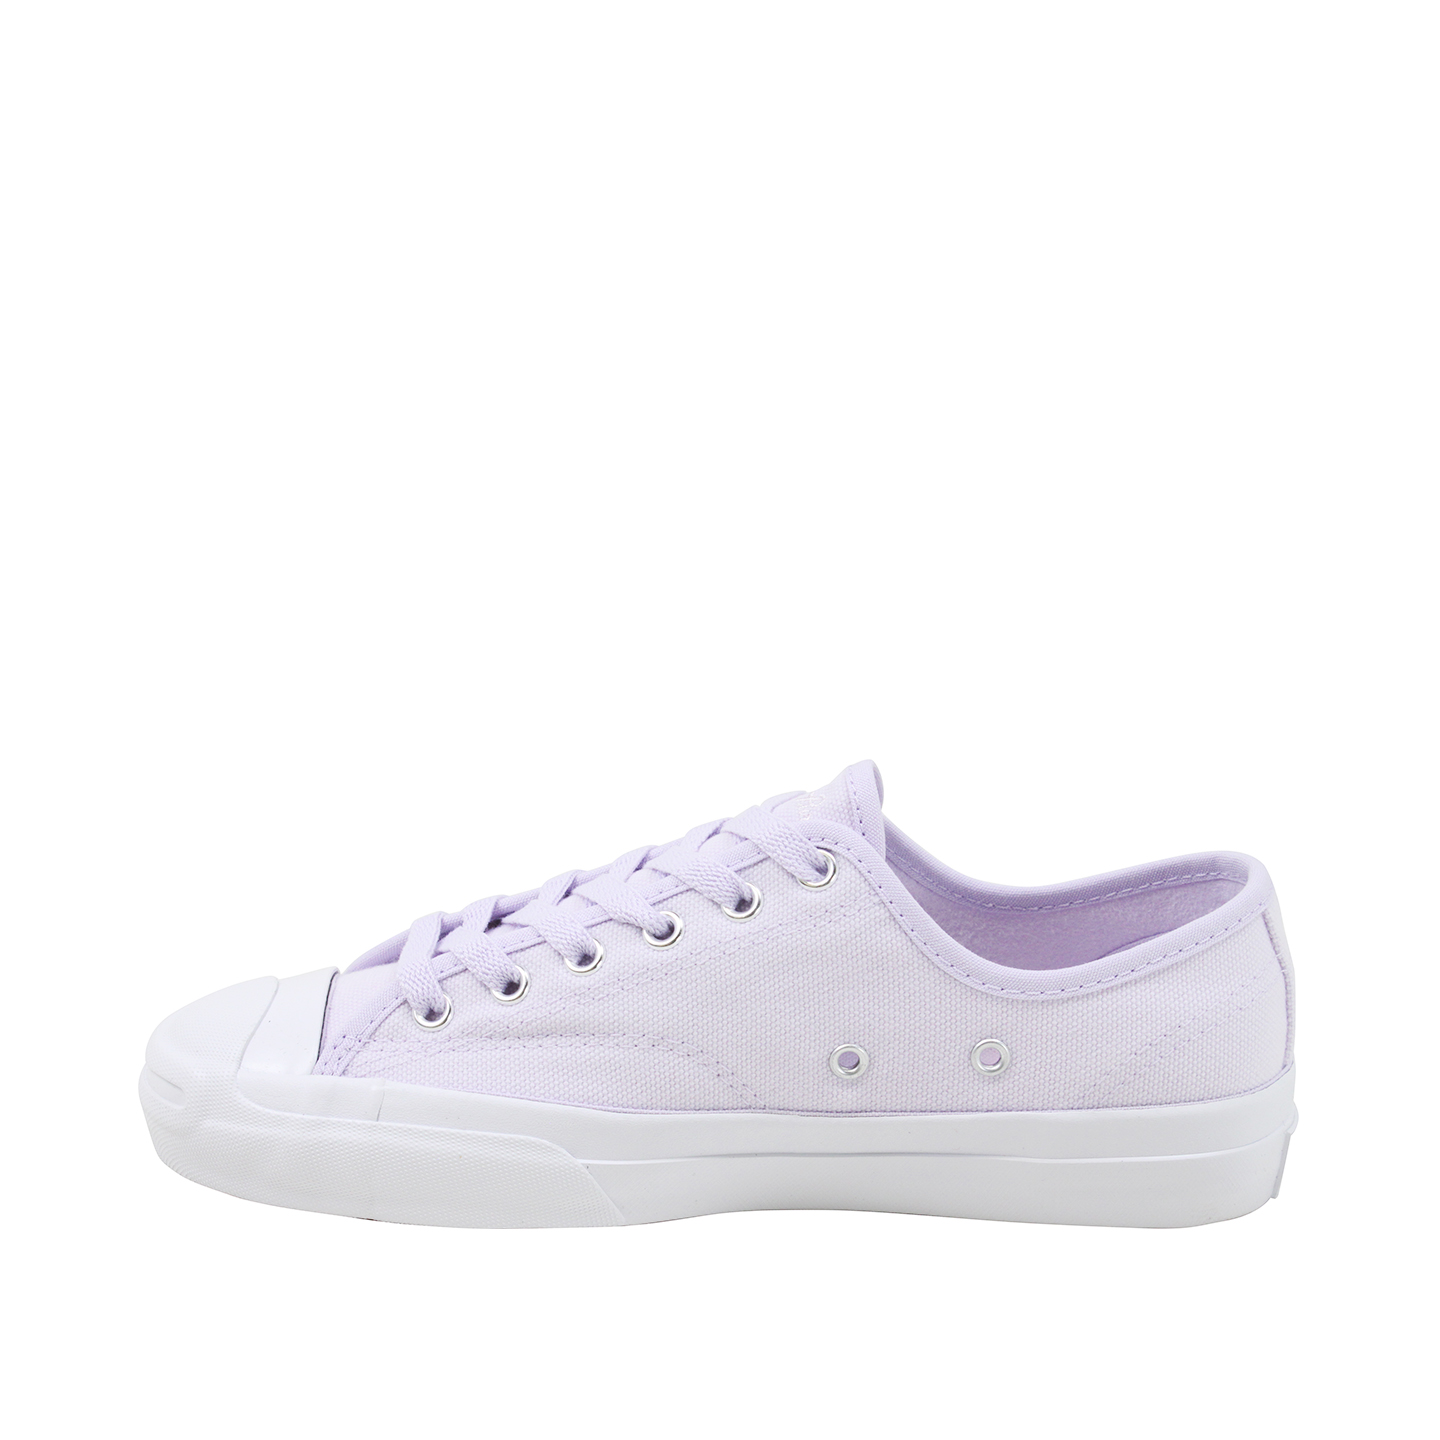 Jack Purcell Pro OX - Barely GrapeMens - Flying Point Surf 27717884d